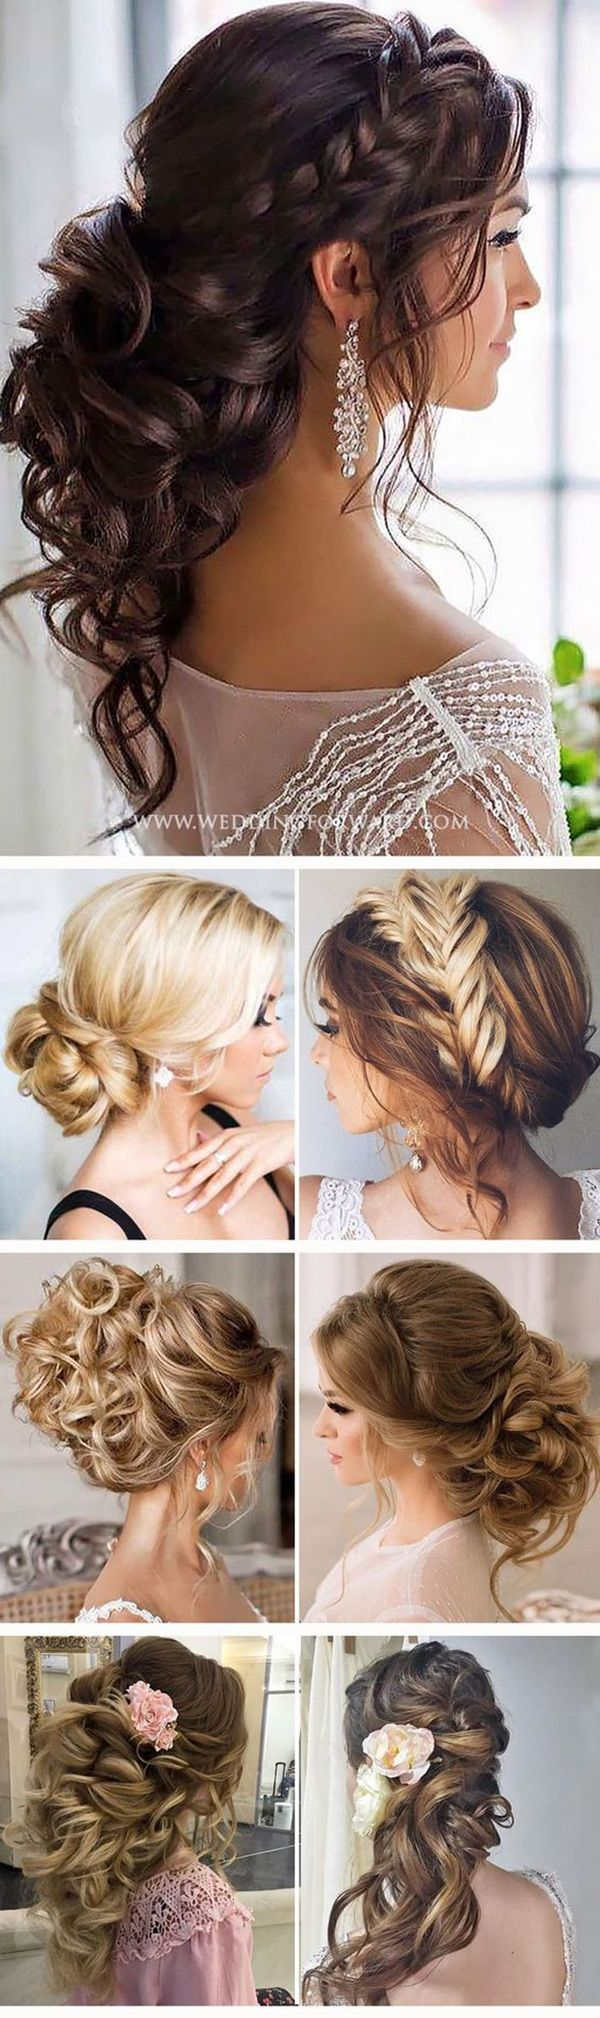 best 25+ wedding updo ideas on pinterest | wedding hair updo, prom